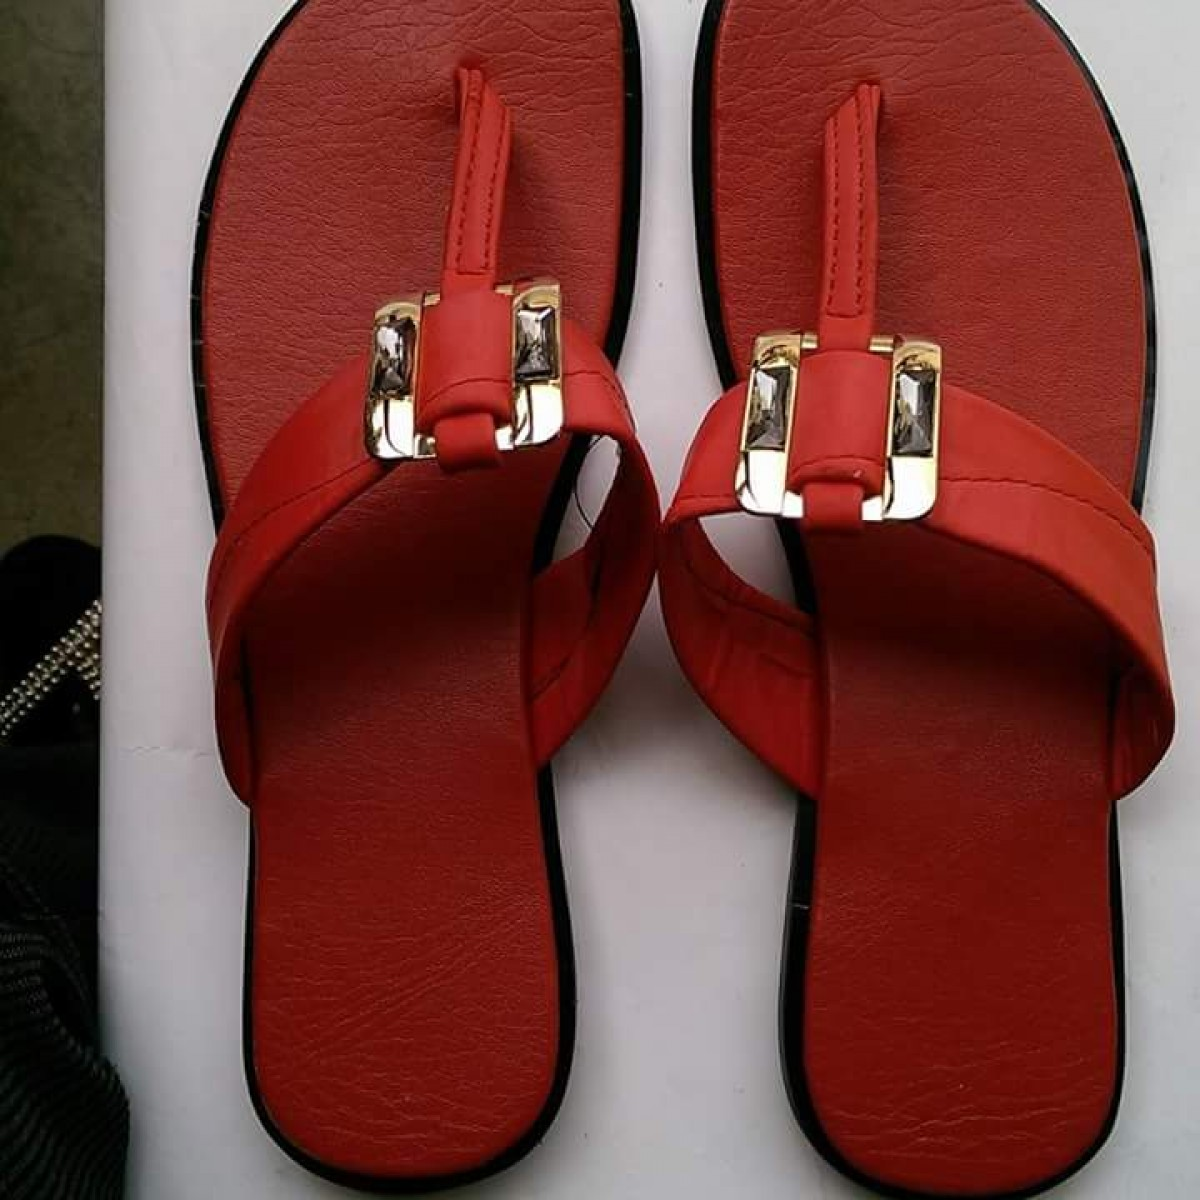 FDC slippers image